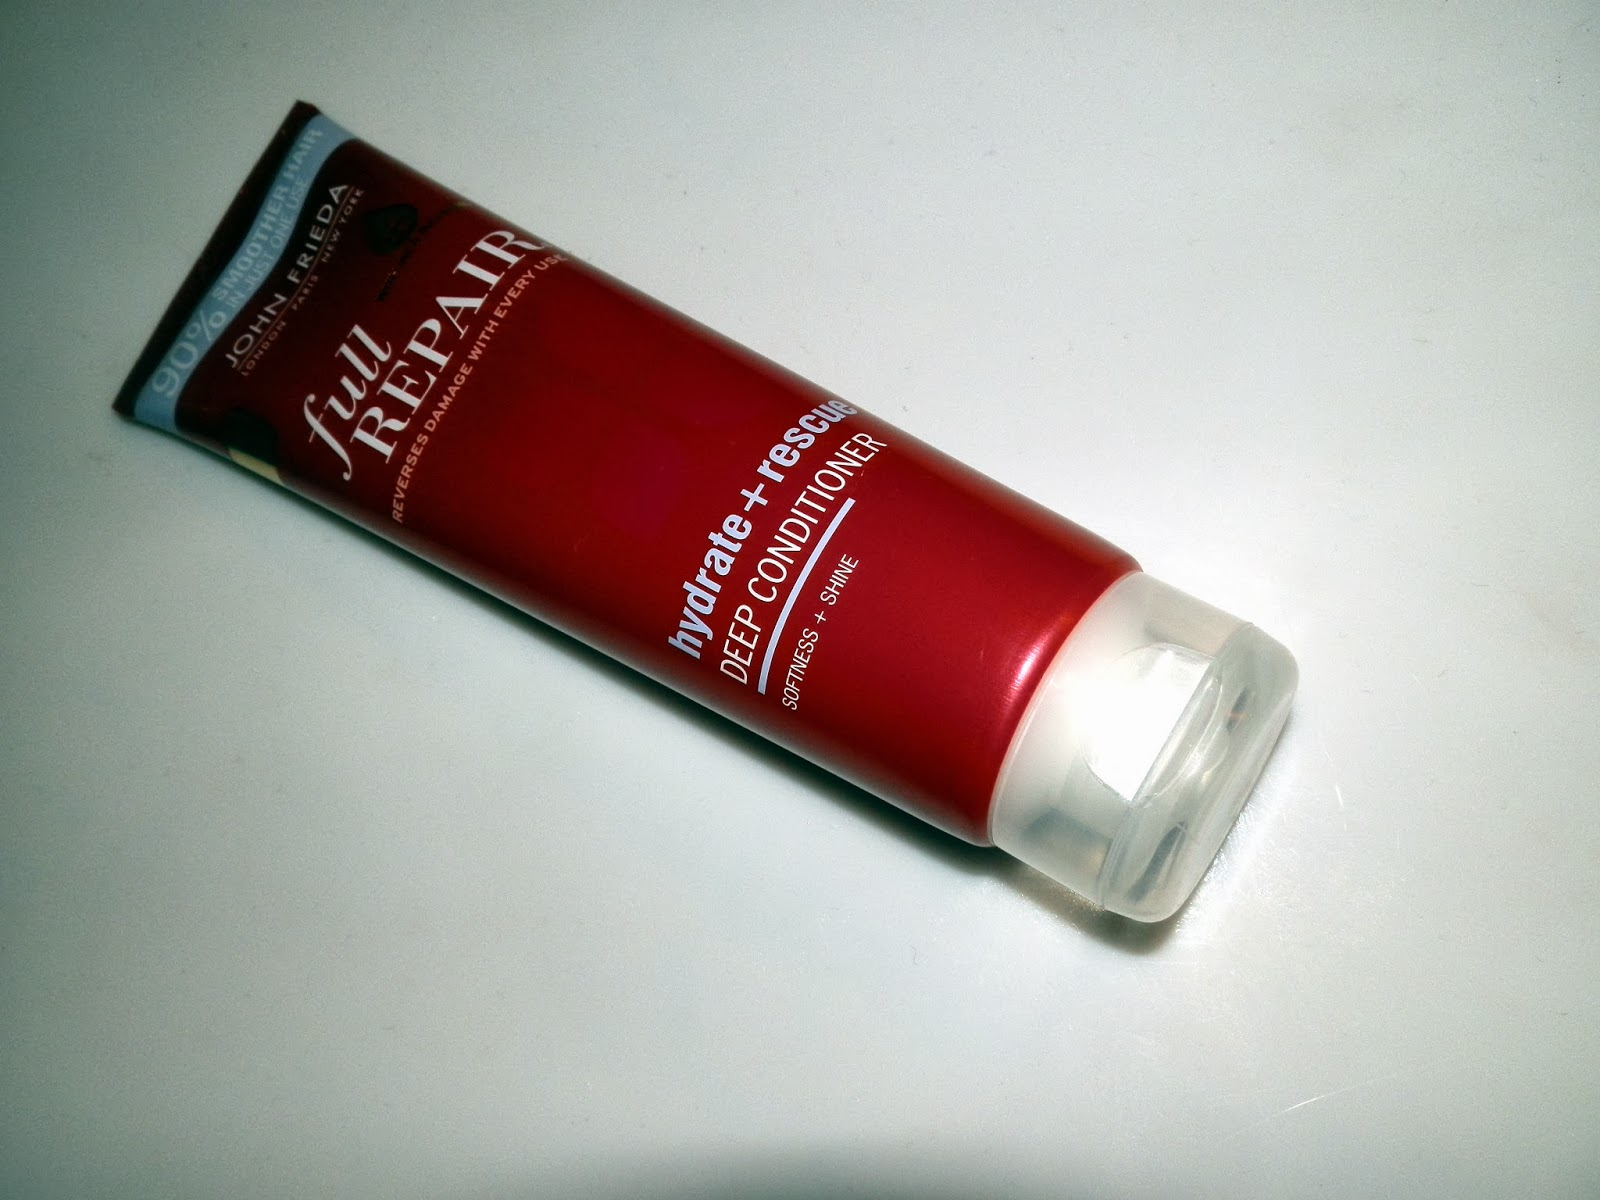 John Frieda Full Repair Hydrate Rescue Conditioner Reviews